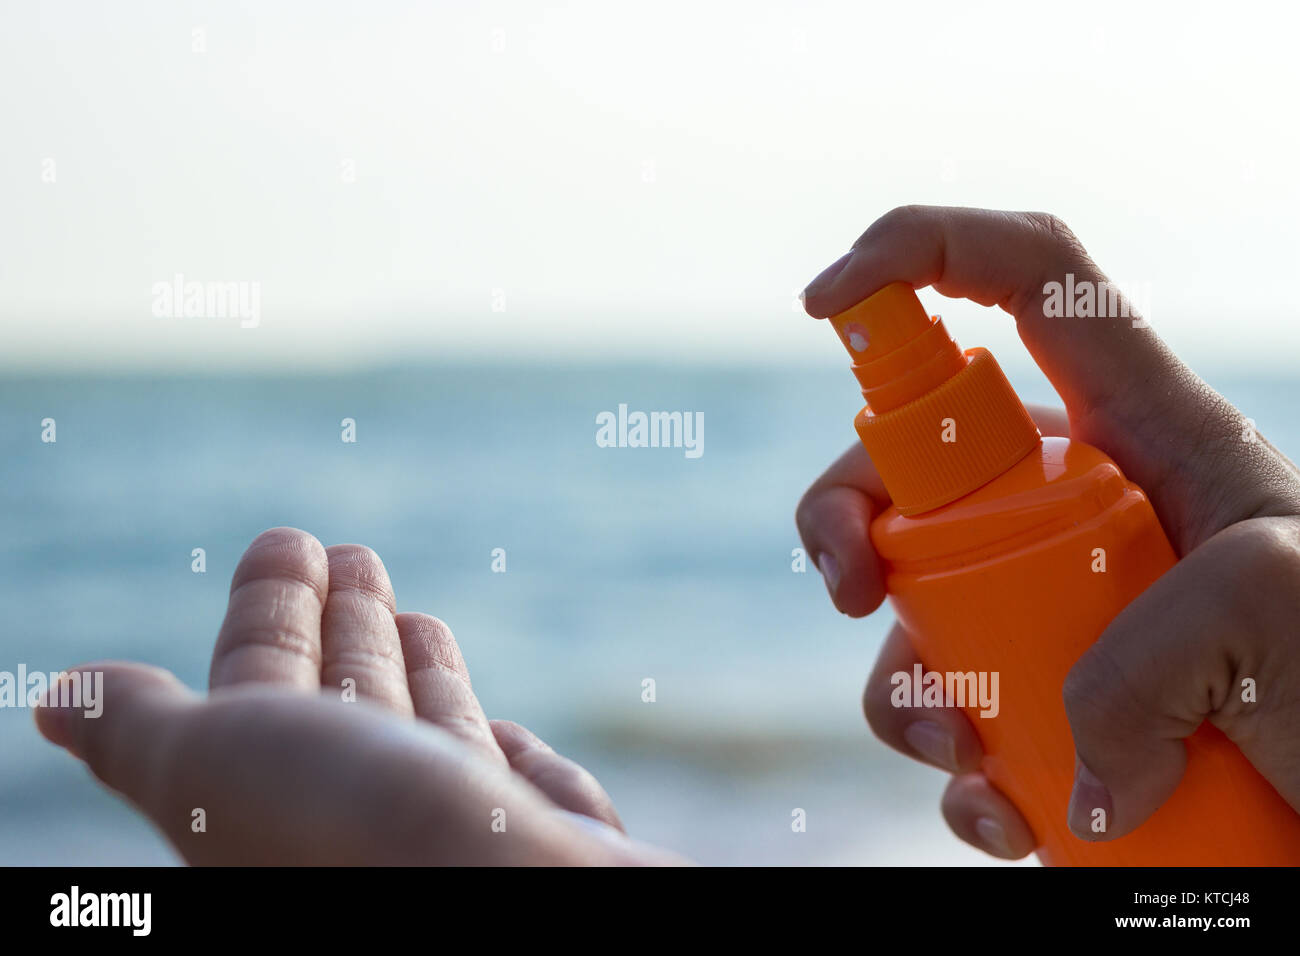 Woman pouring sun protection cream in a hand - Stock Image